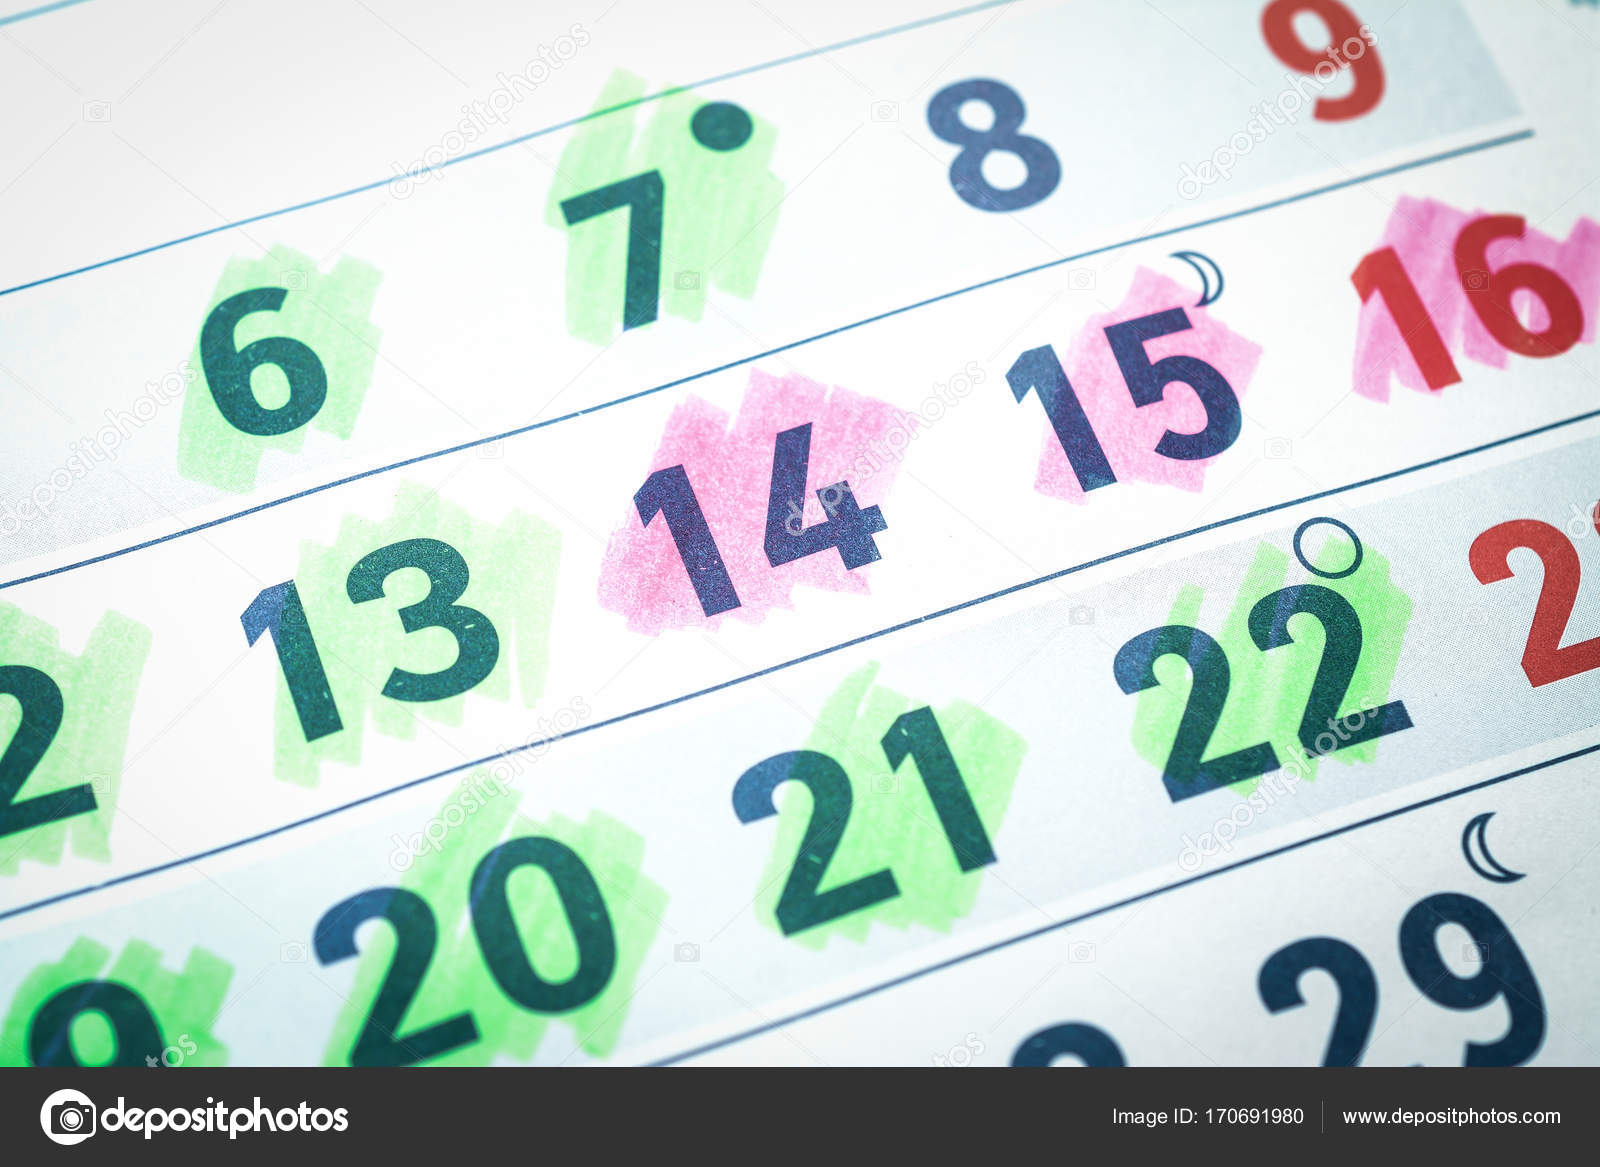 Pregnancy Calendar Background — Stock Photo © Bisonov #170691980 inside Pregnancy Calendar Day By Day Pictures